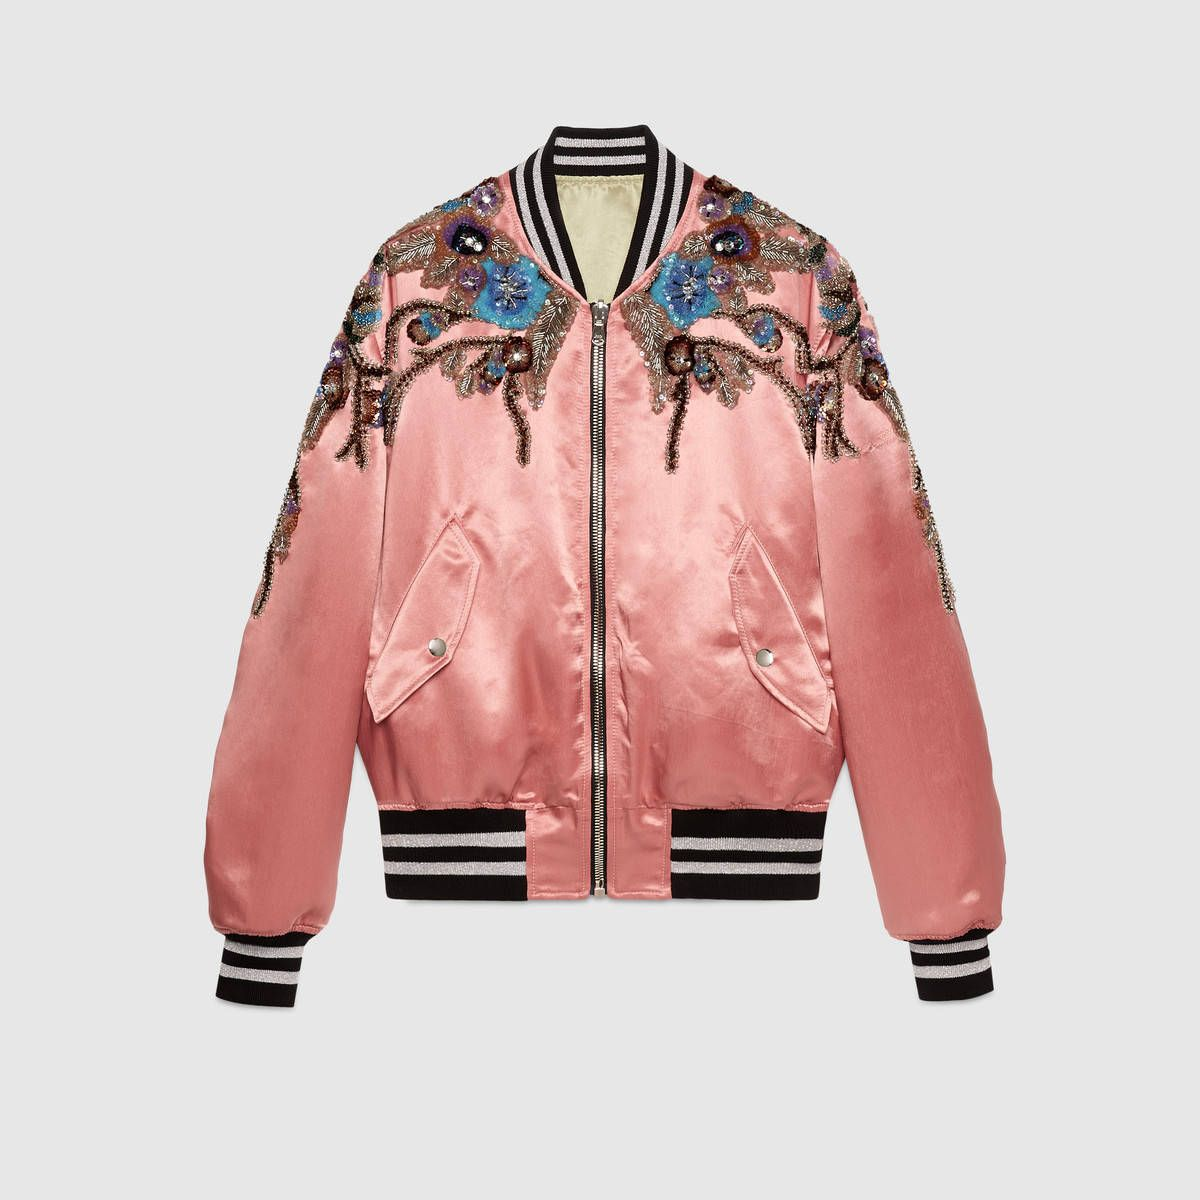 Shop The Reversible Sequin Acetate Bomber By Gucci An Iridescent Acetate Bomber Jacket With Bomber Jacket Fashion Colorful Bomber Jacket Floral Bomber Jacket [ 1200 x 1200 Pixel ]